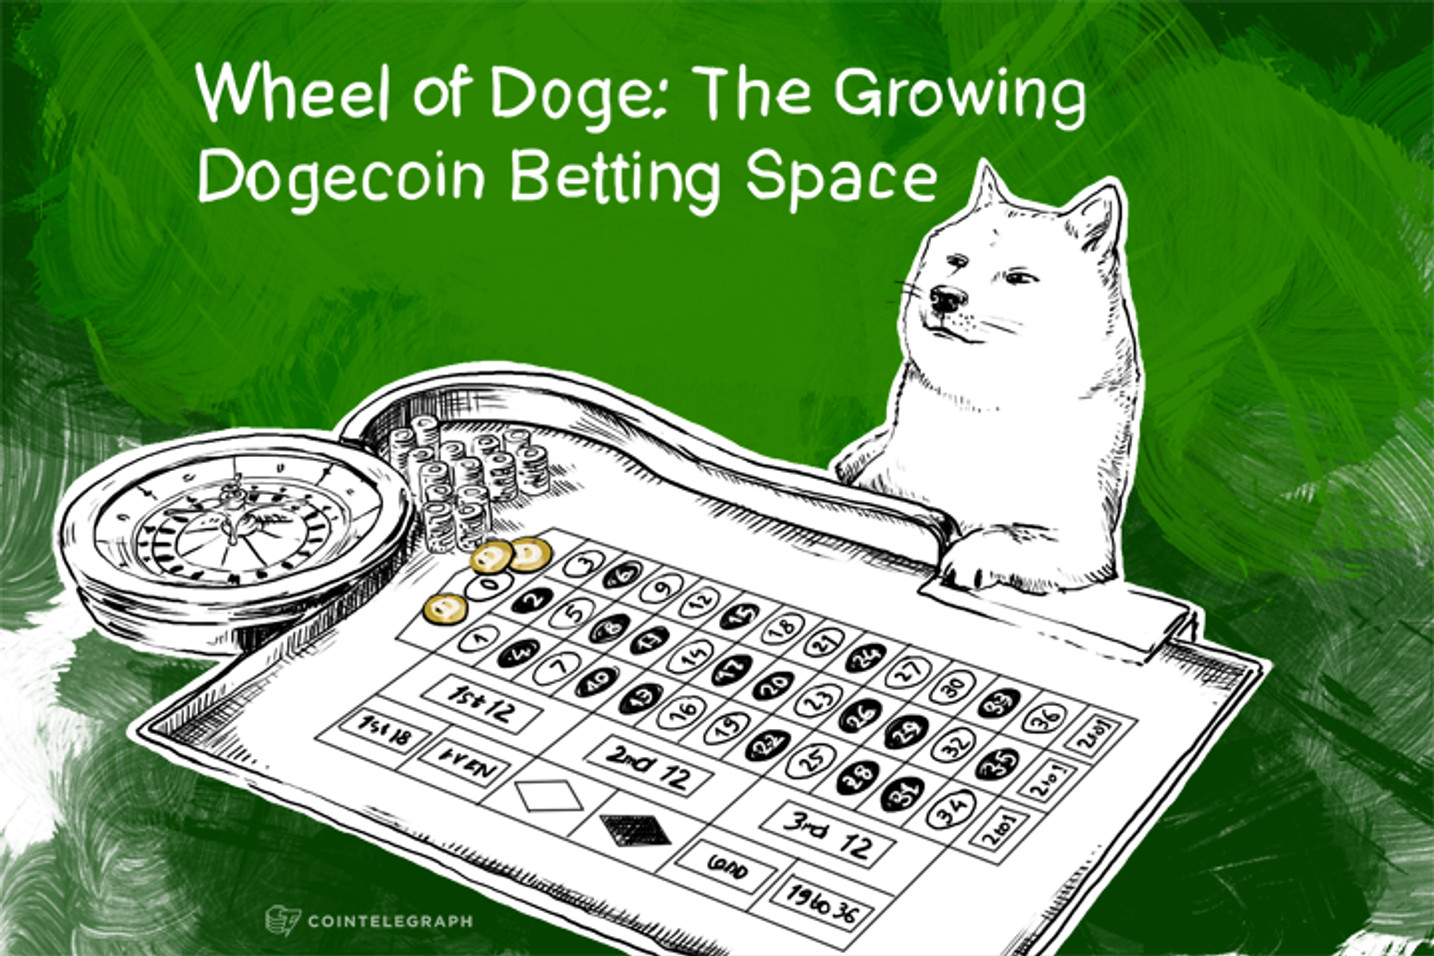 Dogecoin Betting